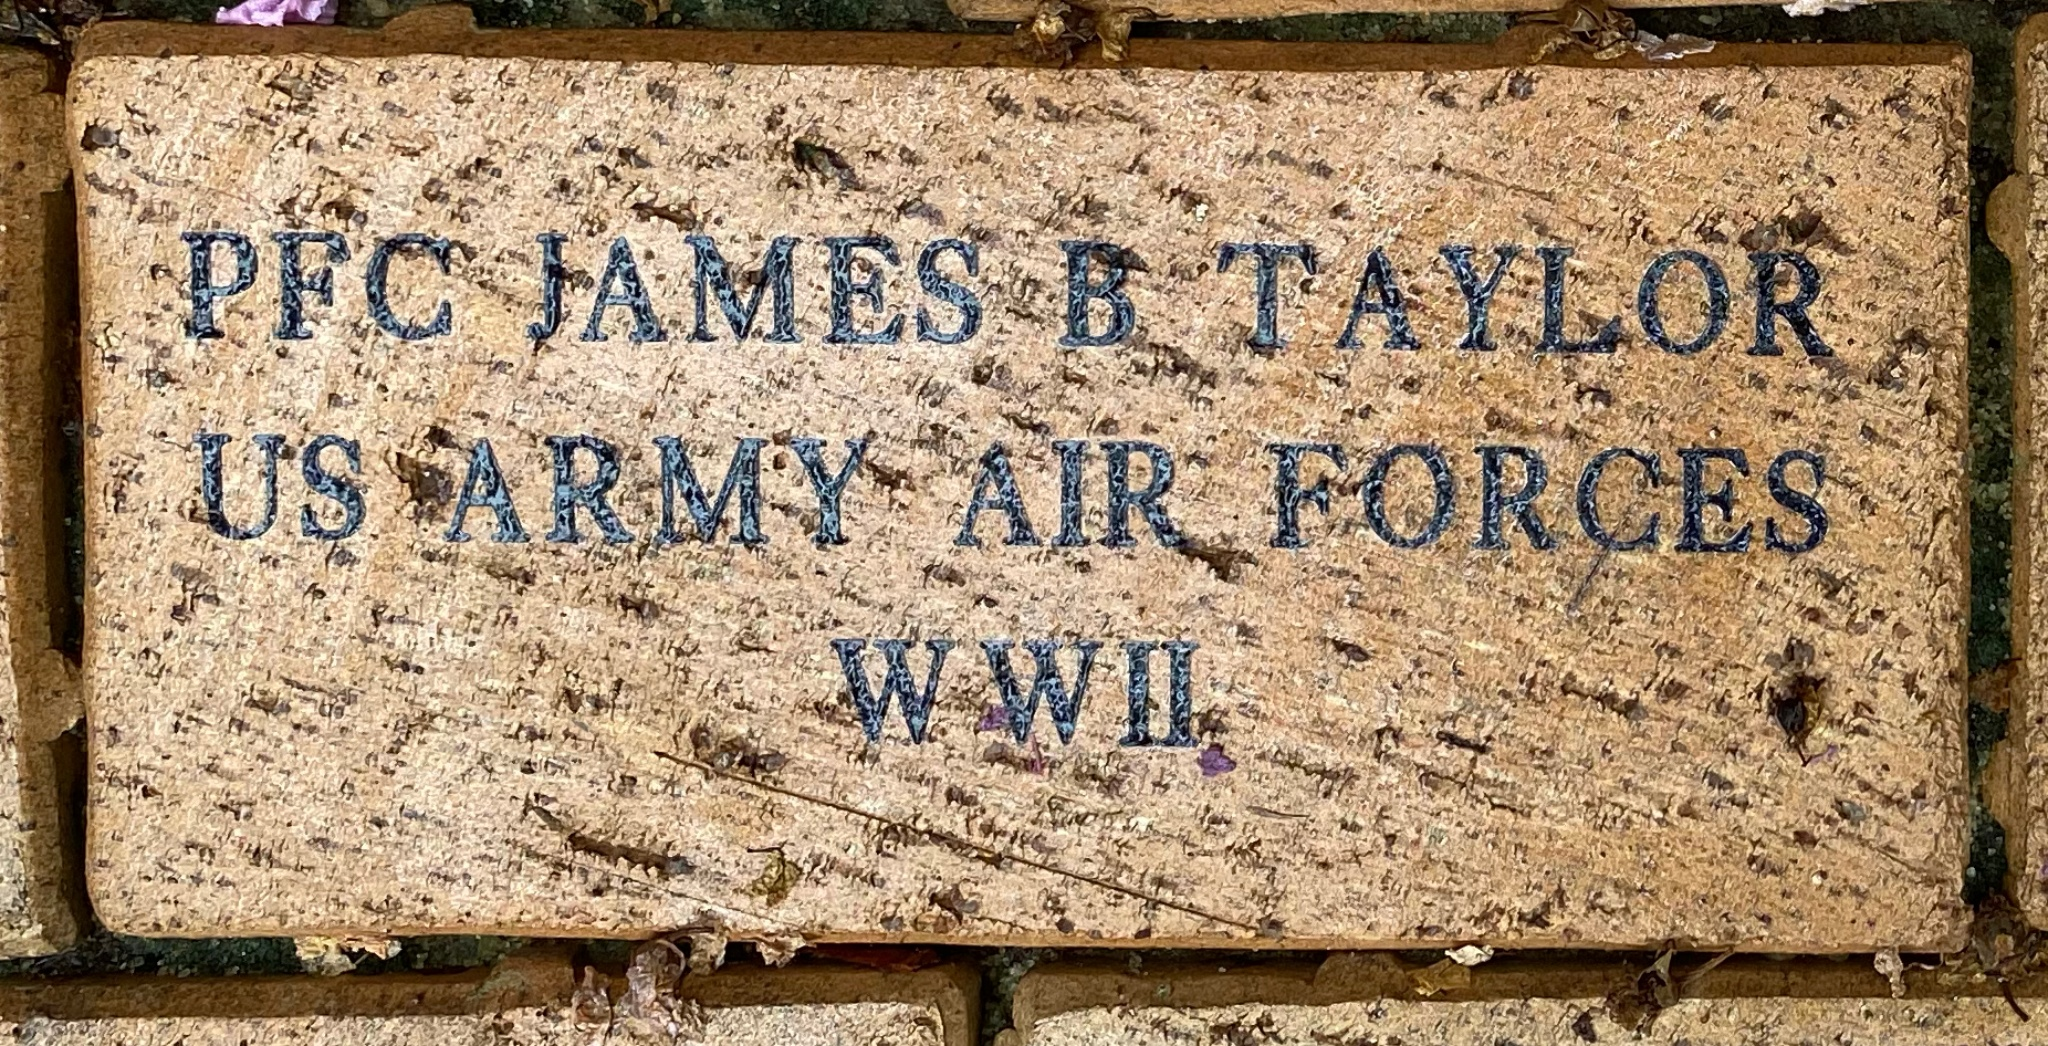 PFC JAMES B TAYLOR US ARMY AIR FORCES WWII